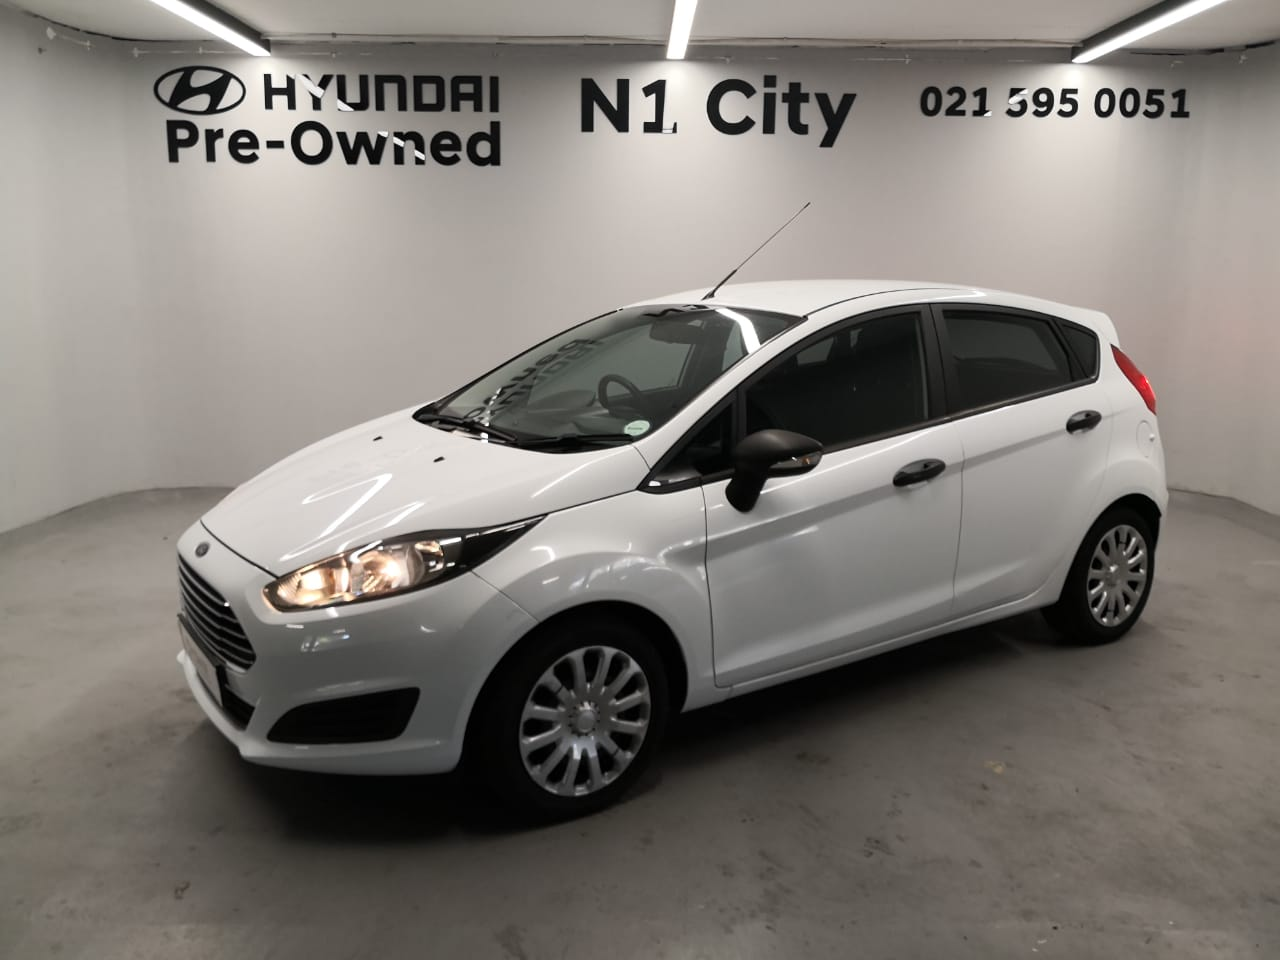 FORD 1.4 AMBIENTE 5 Dr Cape Town 0326507